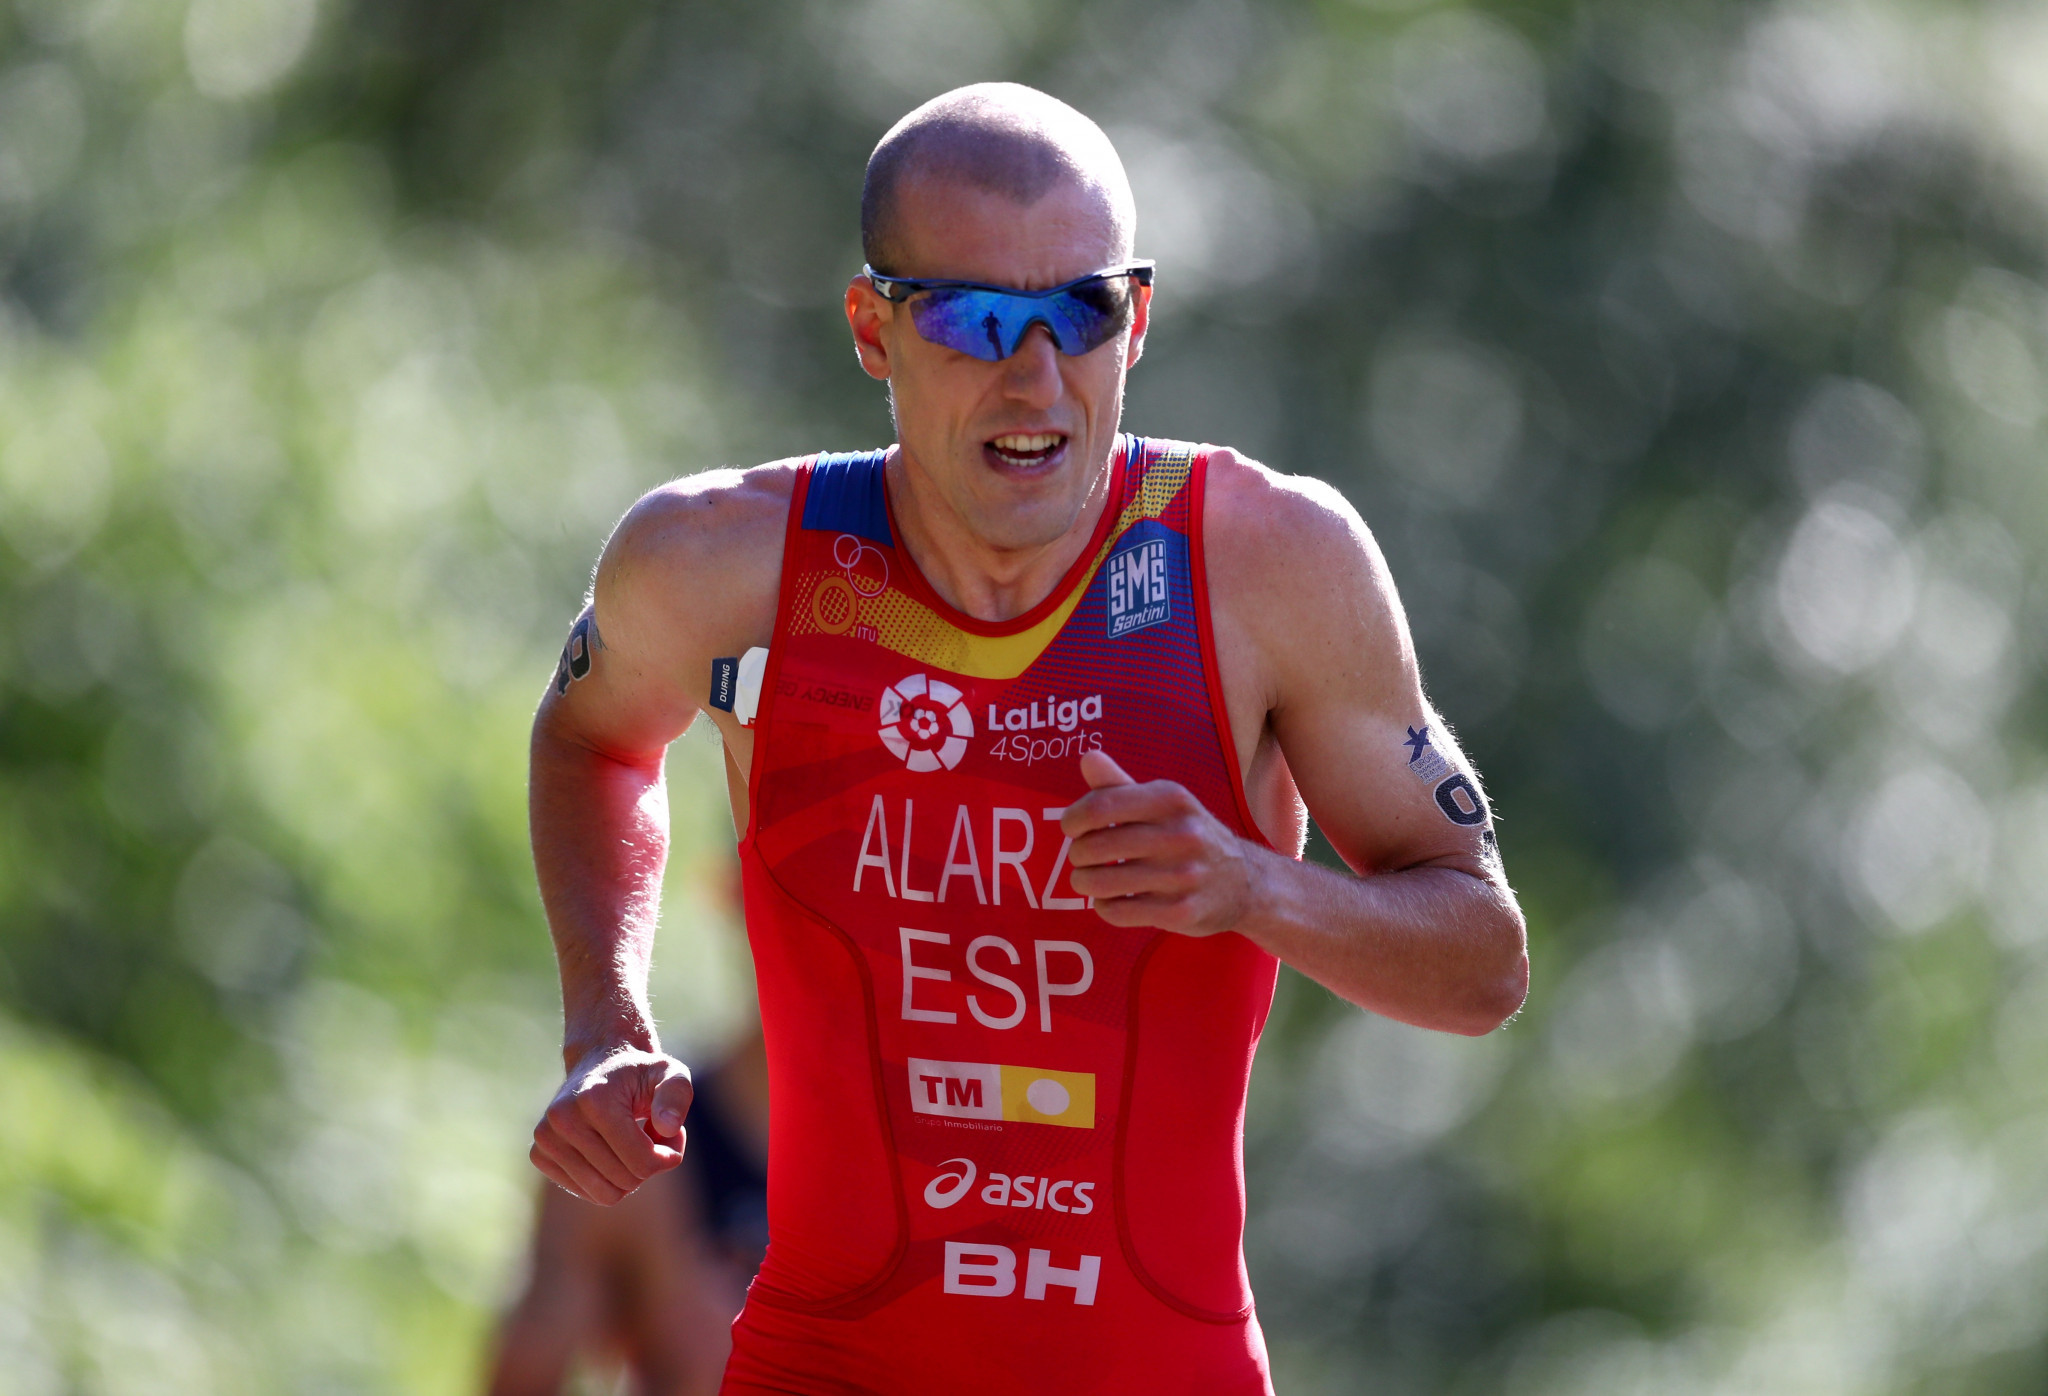 Spain's Fernando Alarza had to settle for the silver medal ©Getty Images